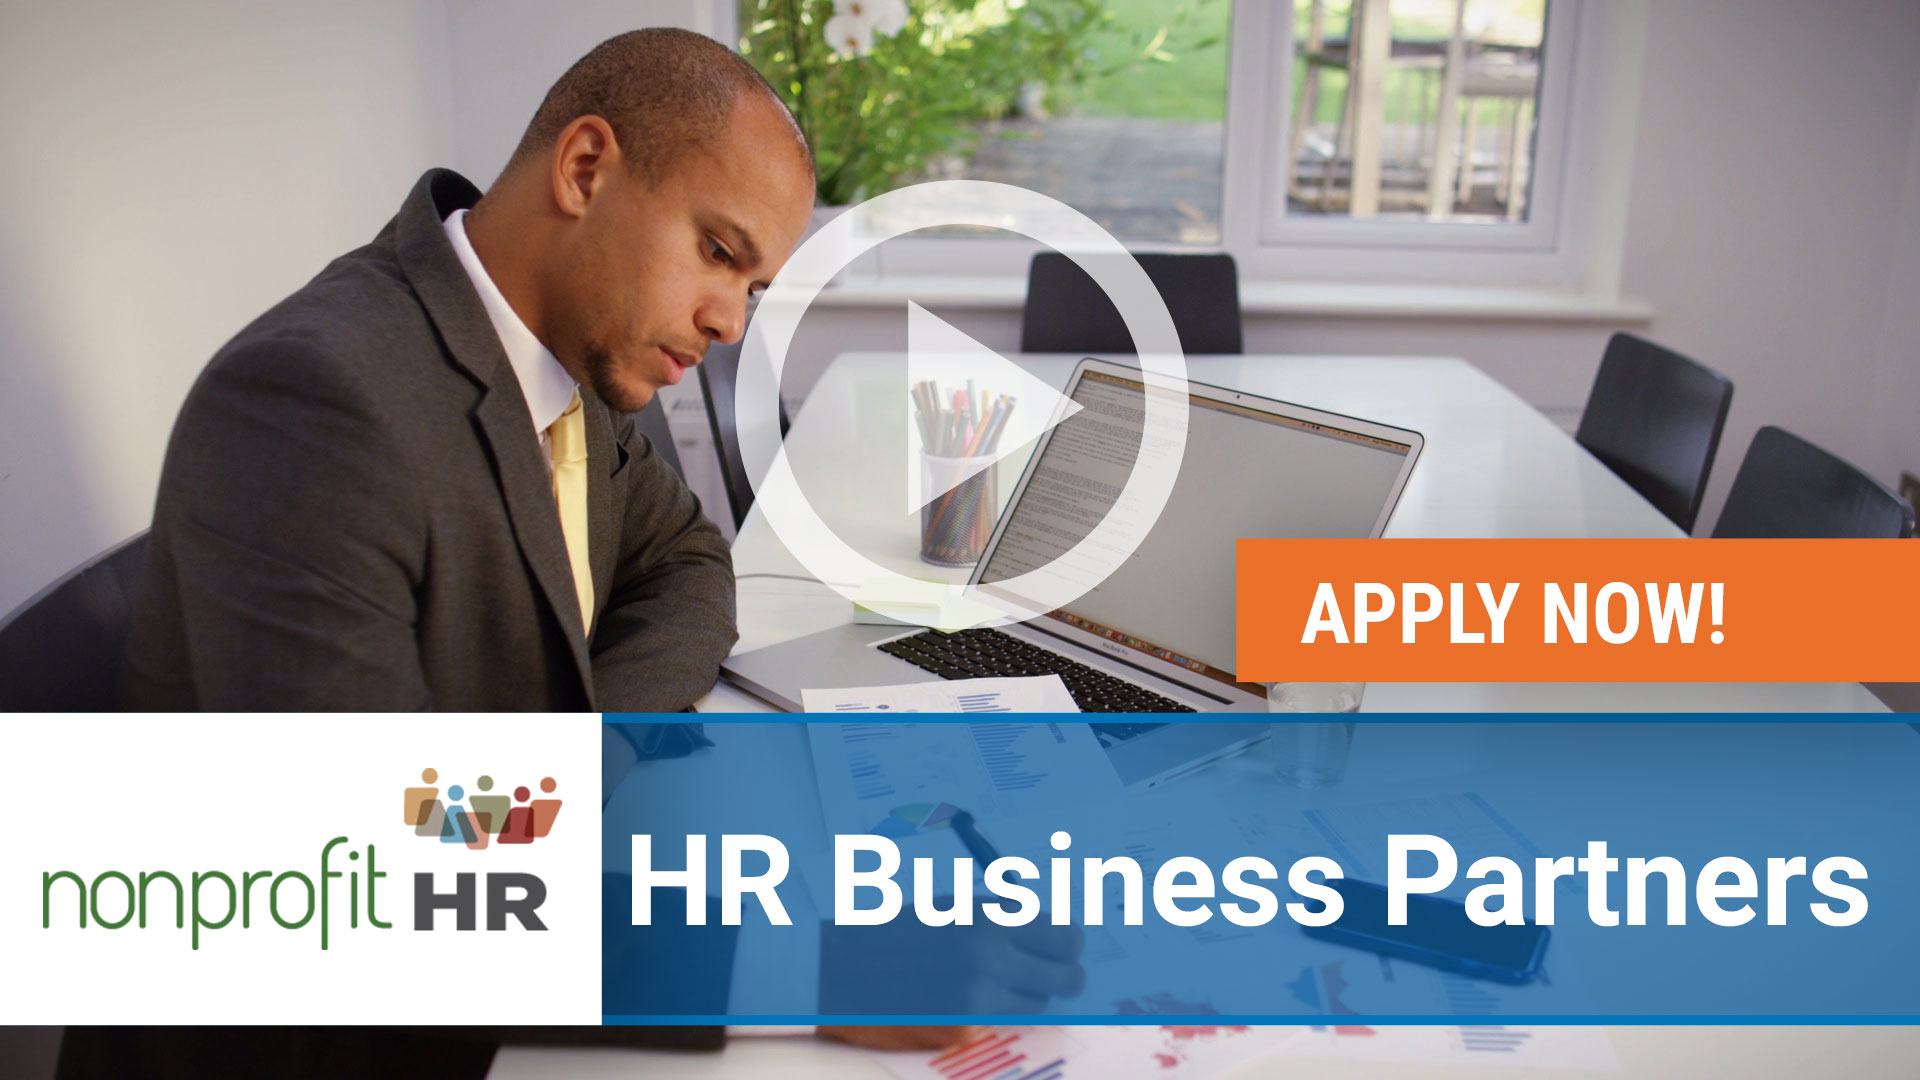 Watch our careers video for available job opening HR Business Partners in Varies,Varies. USA